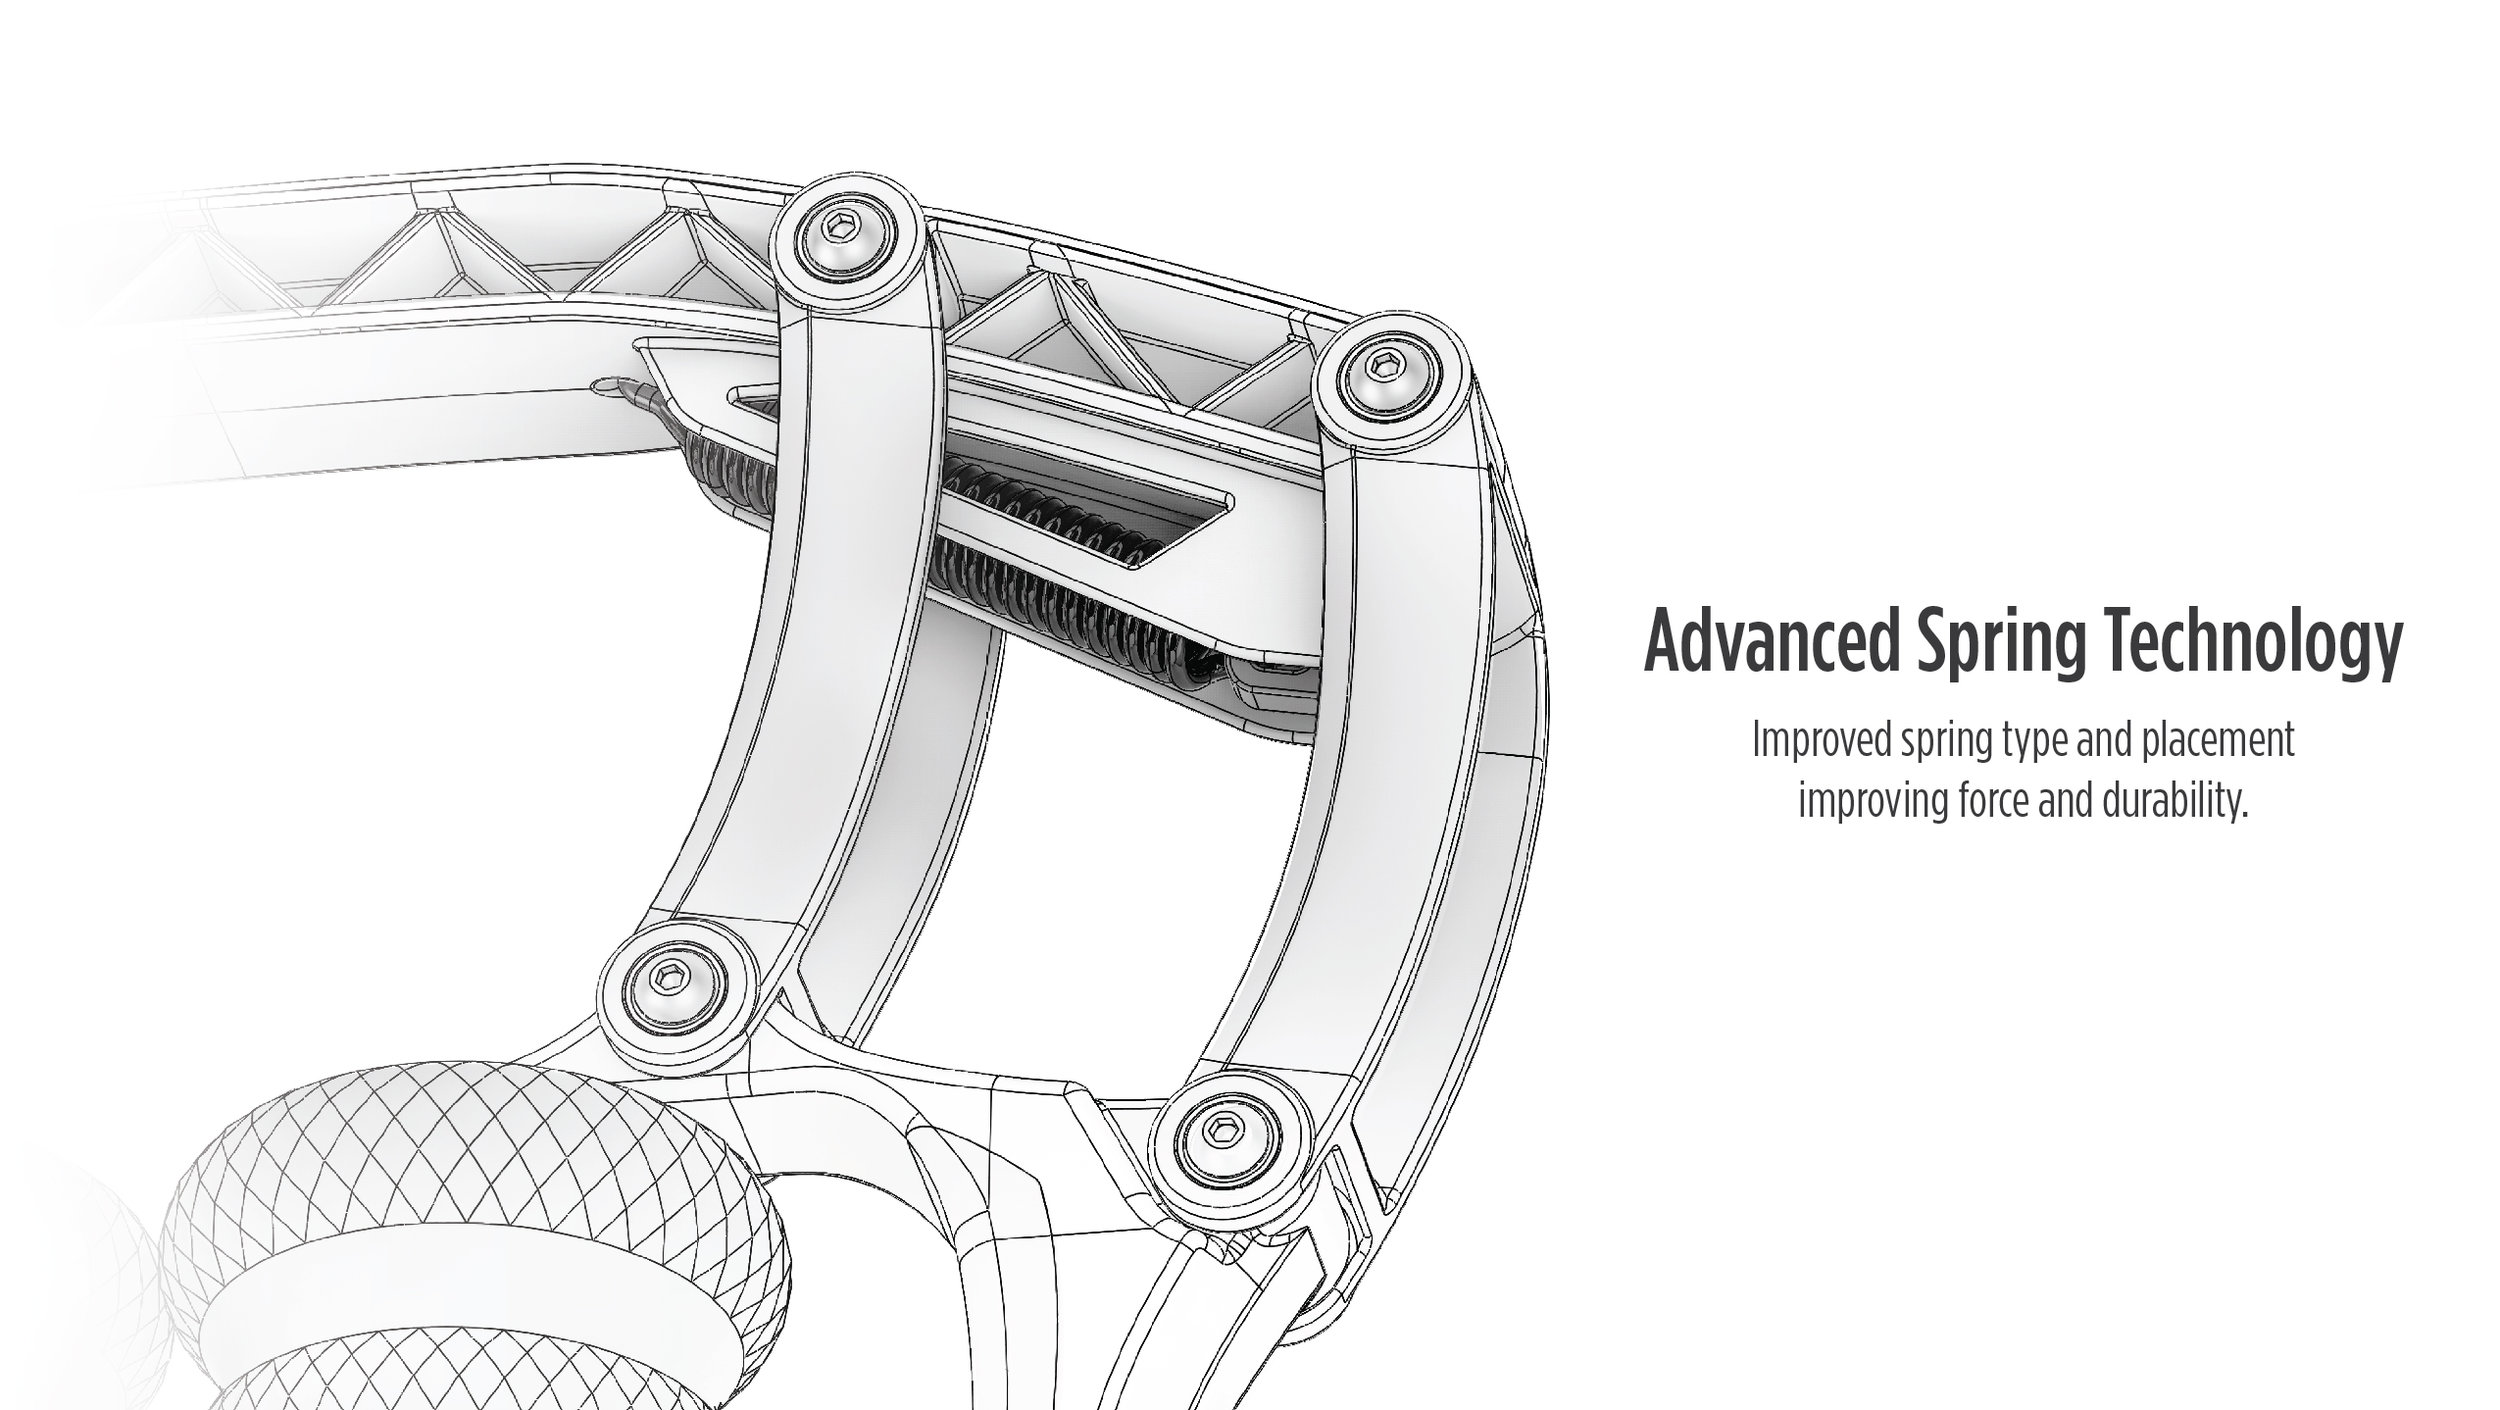 Product-Images_R8-Advanced-spring-technology.jpg